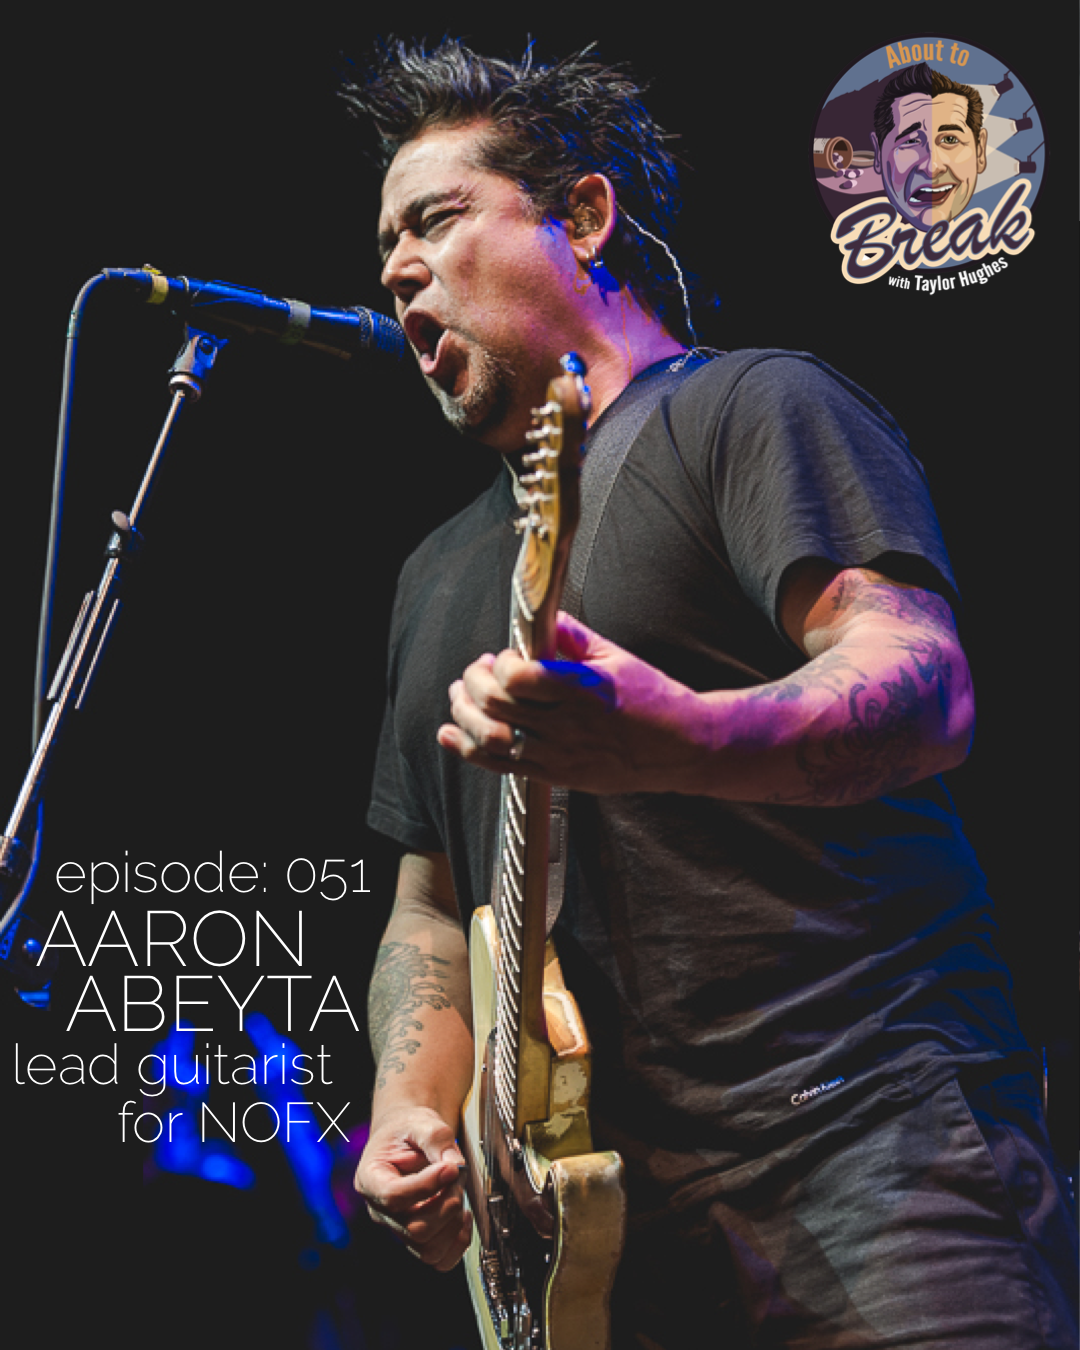 Aaron Abeyta is the lead guitarist and trumpet player for the band NOFX. We sat down and discussed everything from life on the road the last 20 years to him barely surviving a move to Hollywood when he was 21.  In this episode Aaron and I discuss: * His love of Improv Comedy * I'm a total fan boy * Wikipedia can't be trusted * Auditioning for NOFX * Fat Mike changed his name * Learning the bands songs on way to the first show * Being non political in a punk band * Remaining an independent band * How the band has stayed together over 20 years * Trying to get into Groundlings * Bathroom Accidents on stage * Remembering the first time the band could afford a hotel * Having crazy fans follow him home * Pan handling and dumpster diving to survive Hollywood * Everyone should take an improv class * Landing his first role in a movie  …. and never giving up  You can connect with Aaron at   @elhefenofx    Get Tickets to this weeks   Jokers & Aces show    Please take a moment to   rate, share and subscribe   to the show on Apple Podcasts. It makes a huge difference!   Love the show? For as little as $1 a month you can   BECOME A PRODUCER